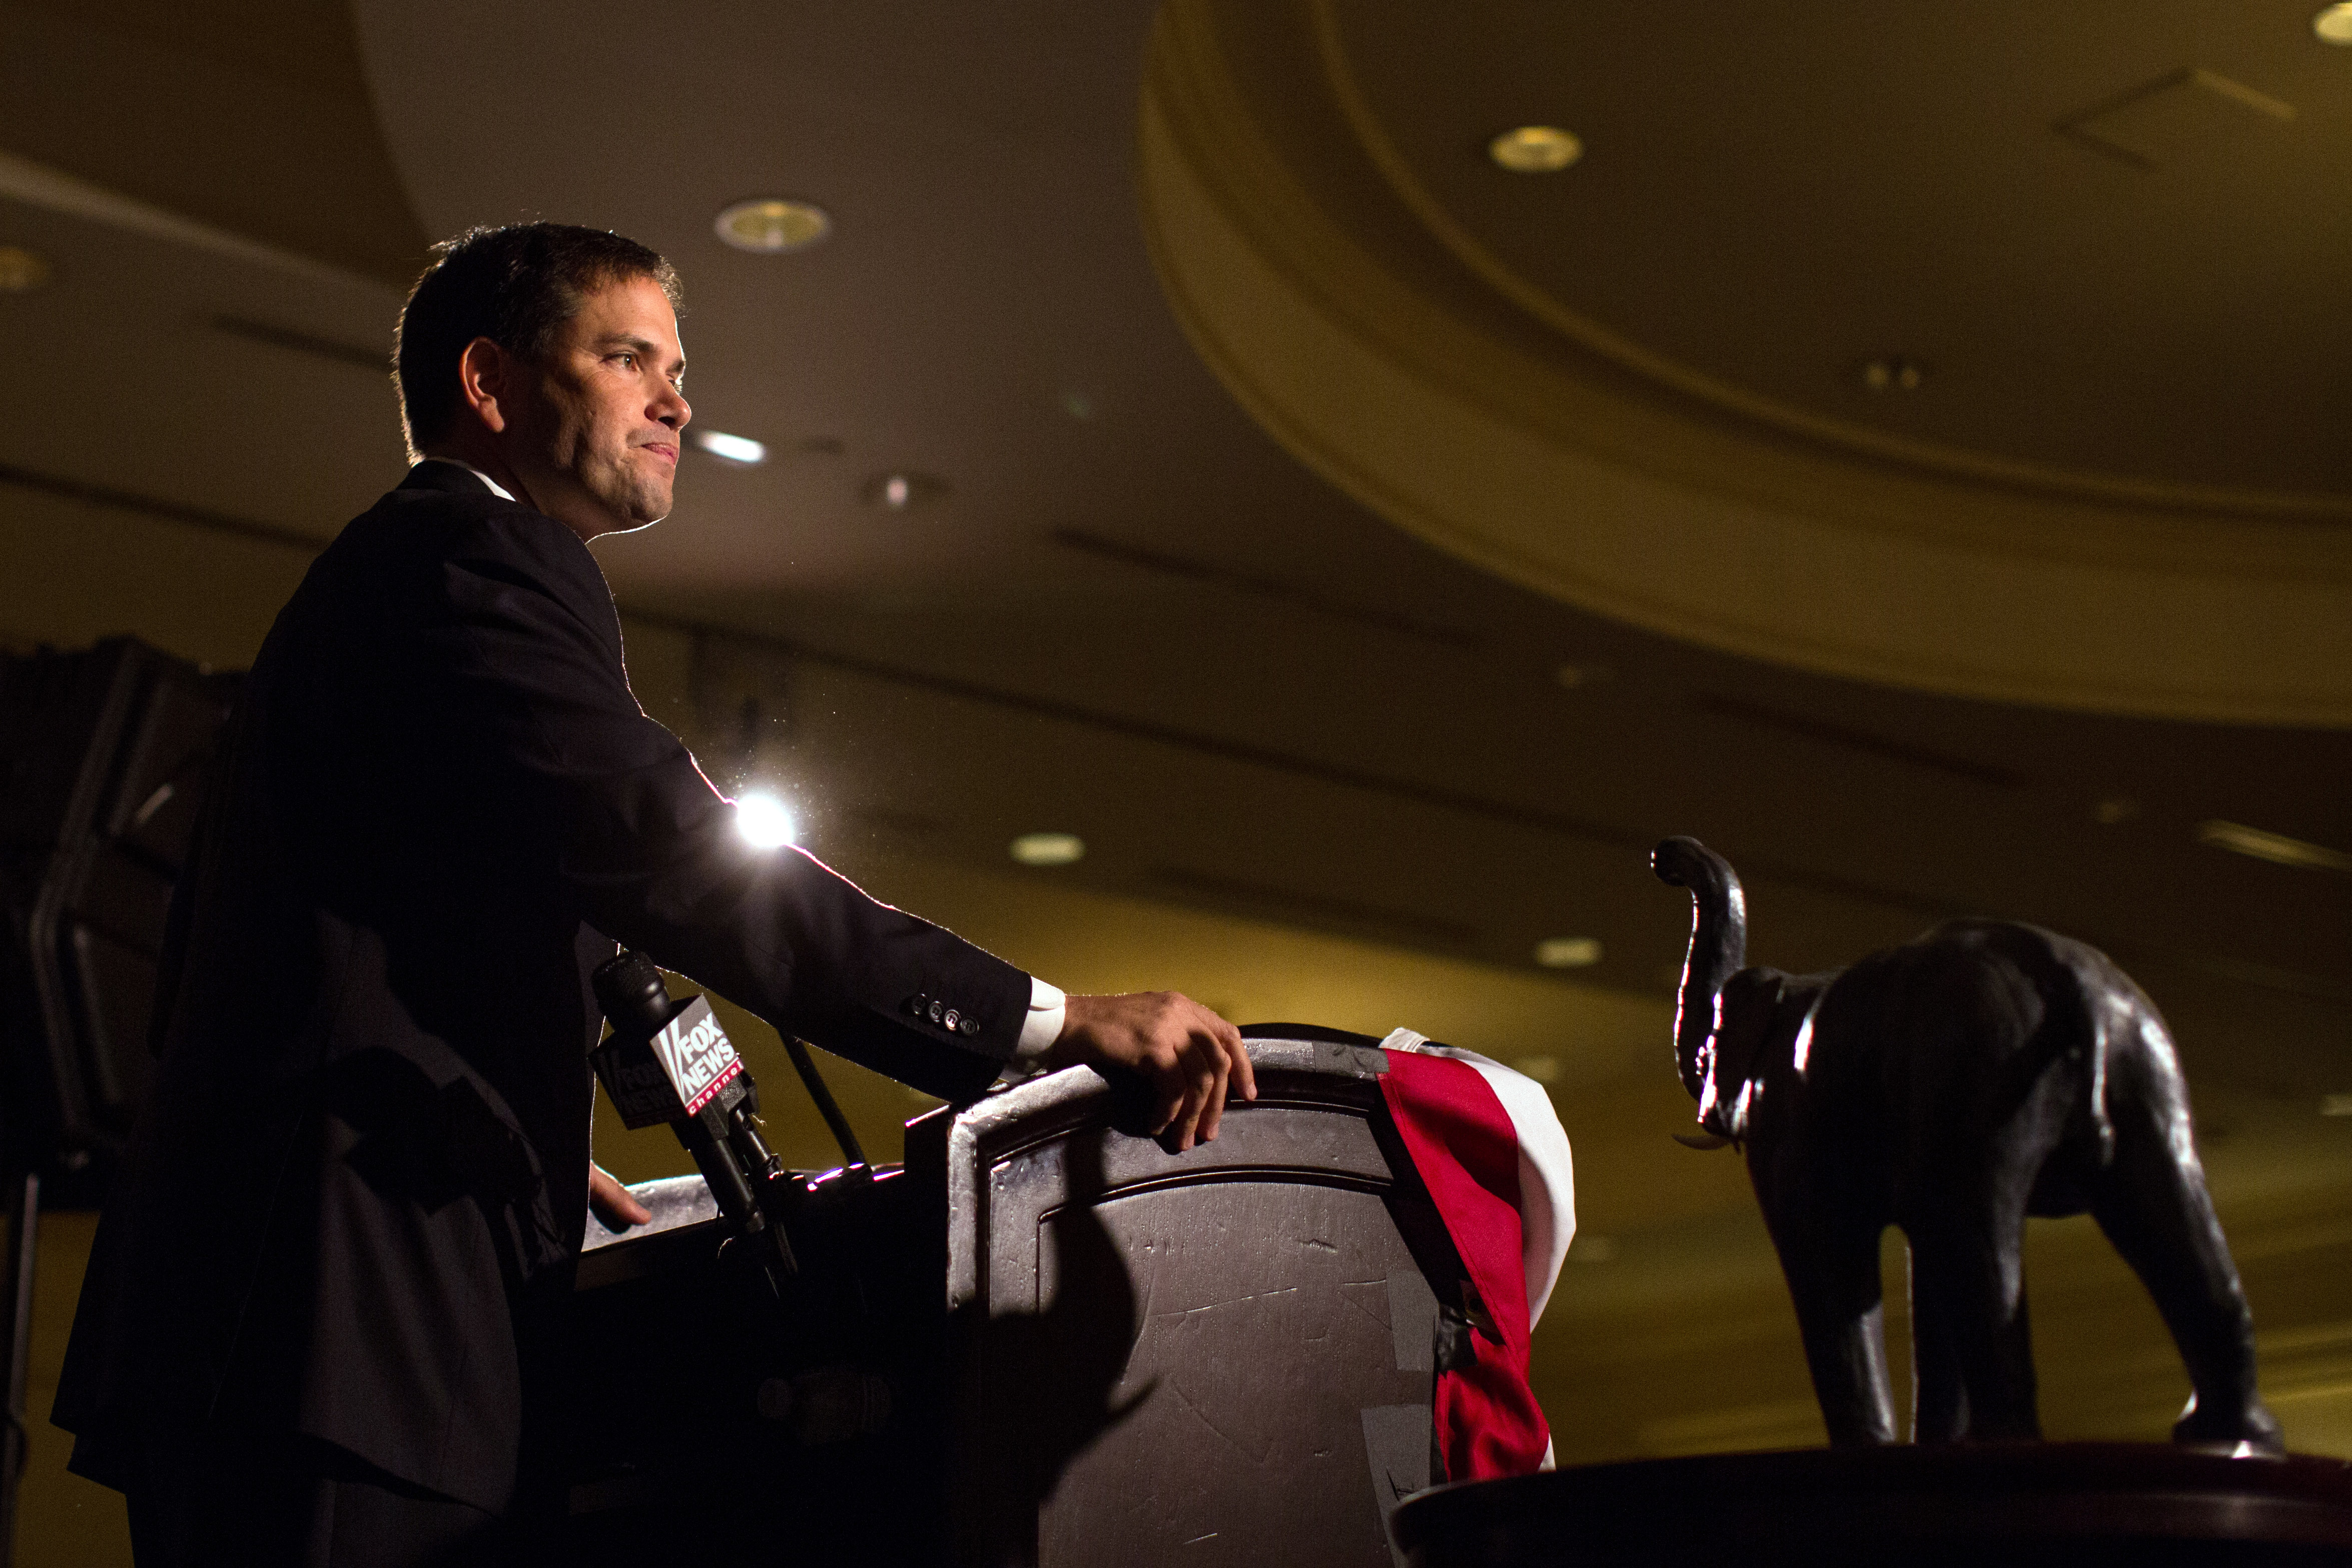 Senator Marco Rubio addresses the New Hampshire Rockingham Committee Freed Founder's Dinner in New Castle, N.H., on May 9, 2014.